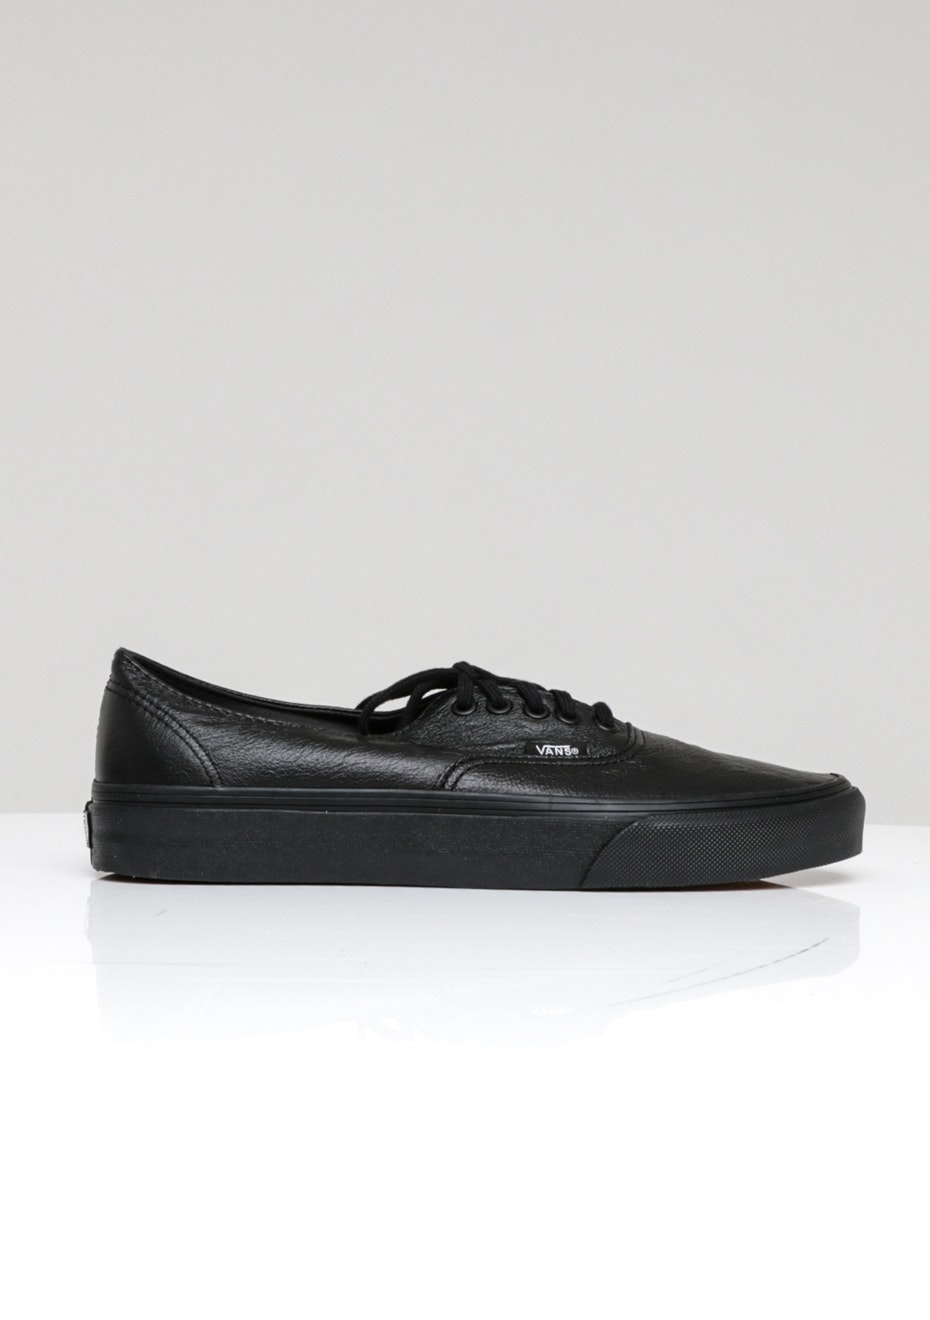 VANS - AUTHENTIC DECON S216 - Black/Black